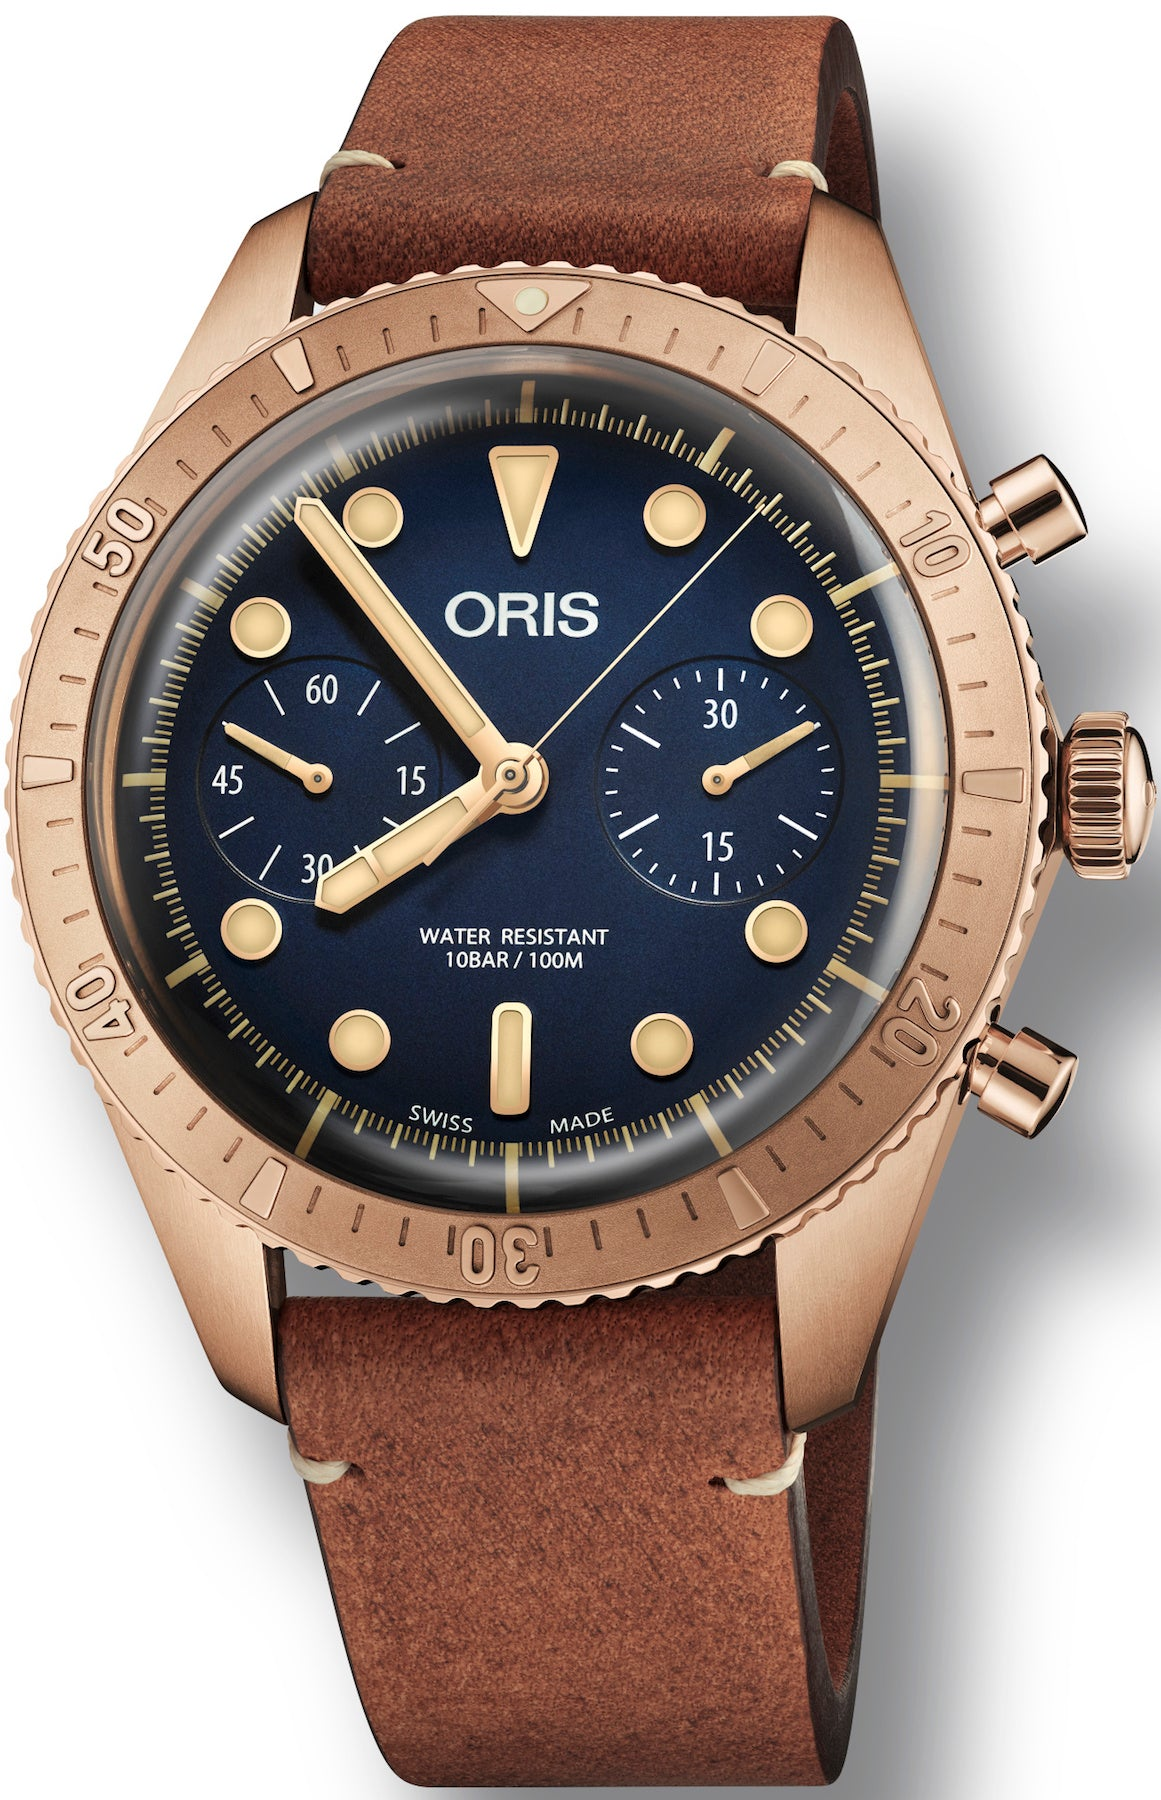 Oris watch carl brashear chronograph limited edition 2018 pre order supplier model no 01 771 for Oris watches